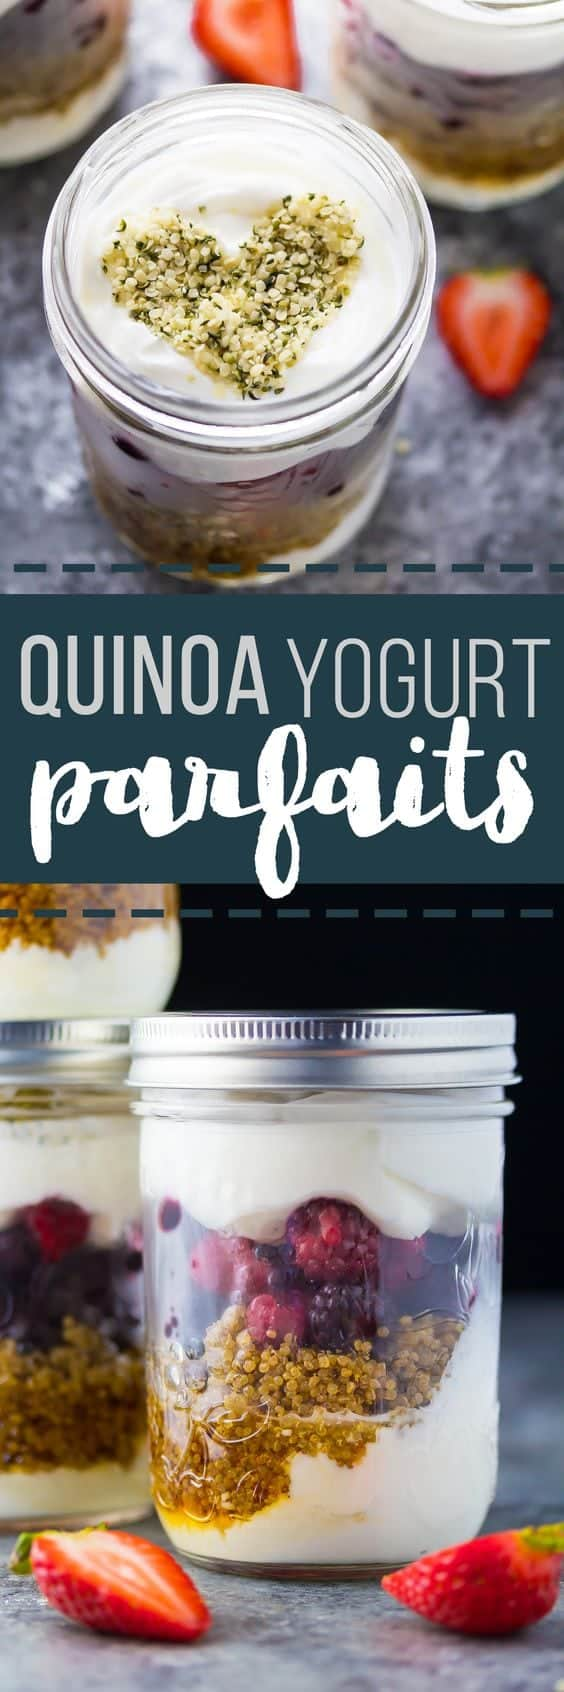 These easy meal prep berry yogurt parfaits are packed full of protein thanks to greek yogurt and a scoop of quinoa! Make up to 4 days ahead of time for a quick healthy breakfast or snack.  #mealprep #sweetpeasandsaffron #snack #breakfast #protein #healthy